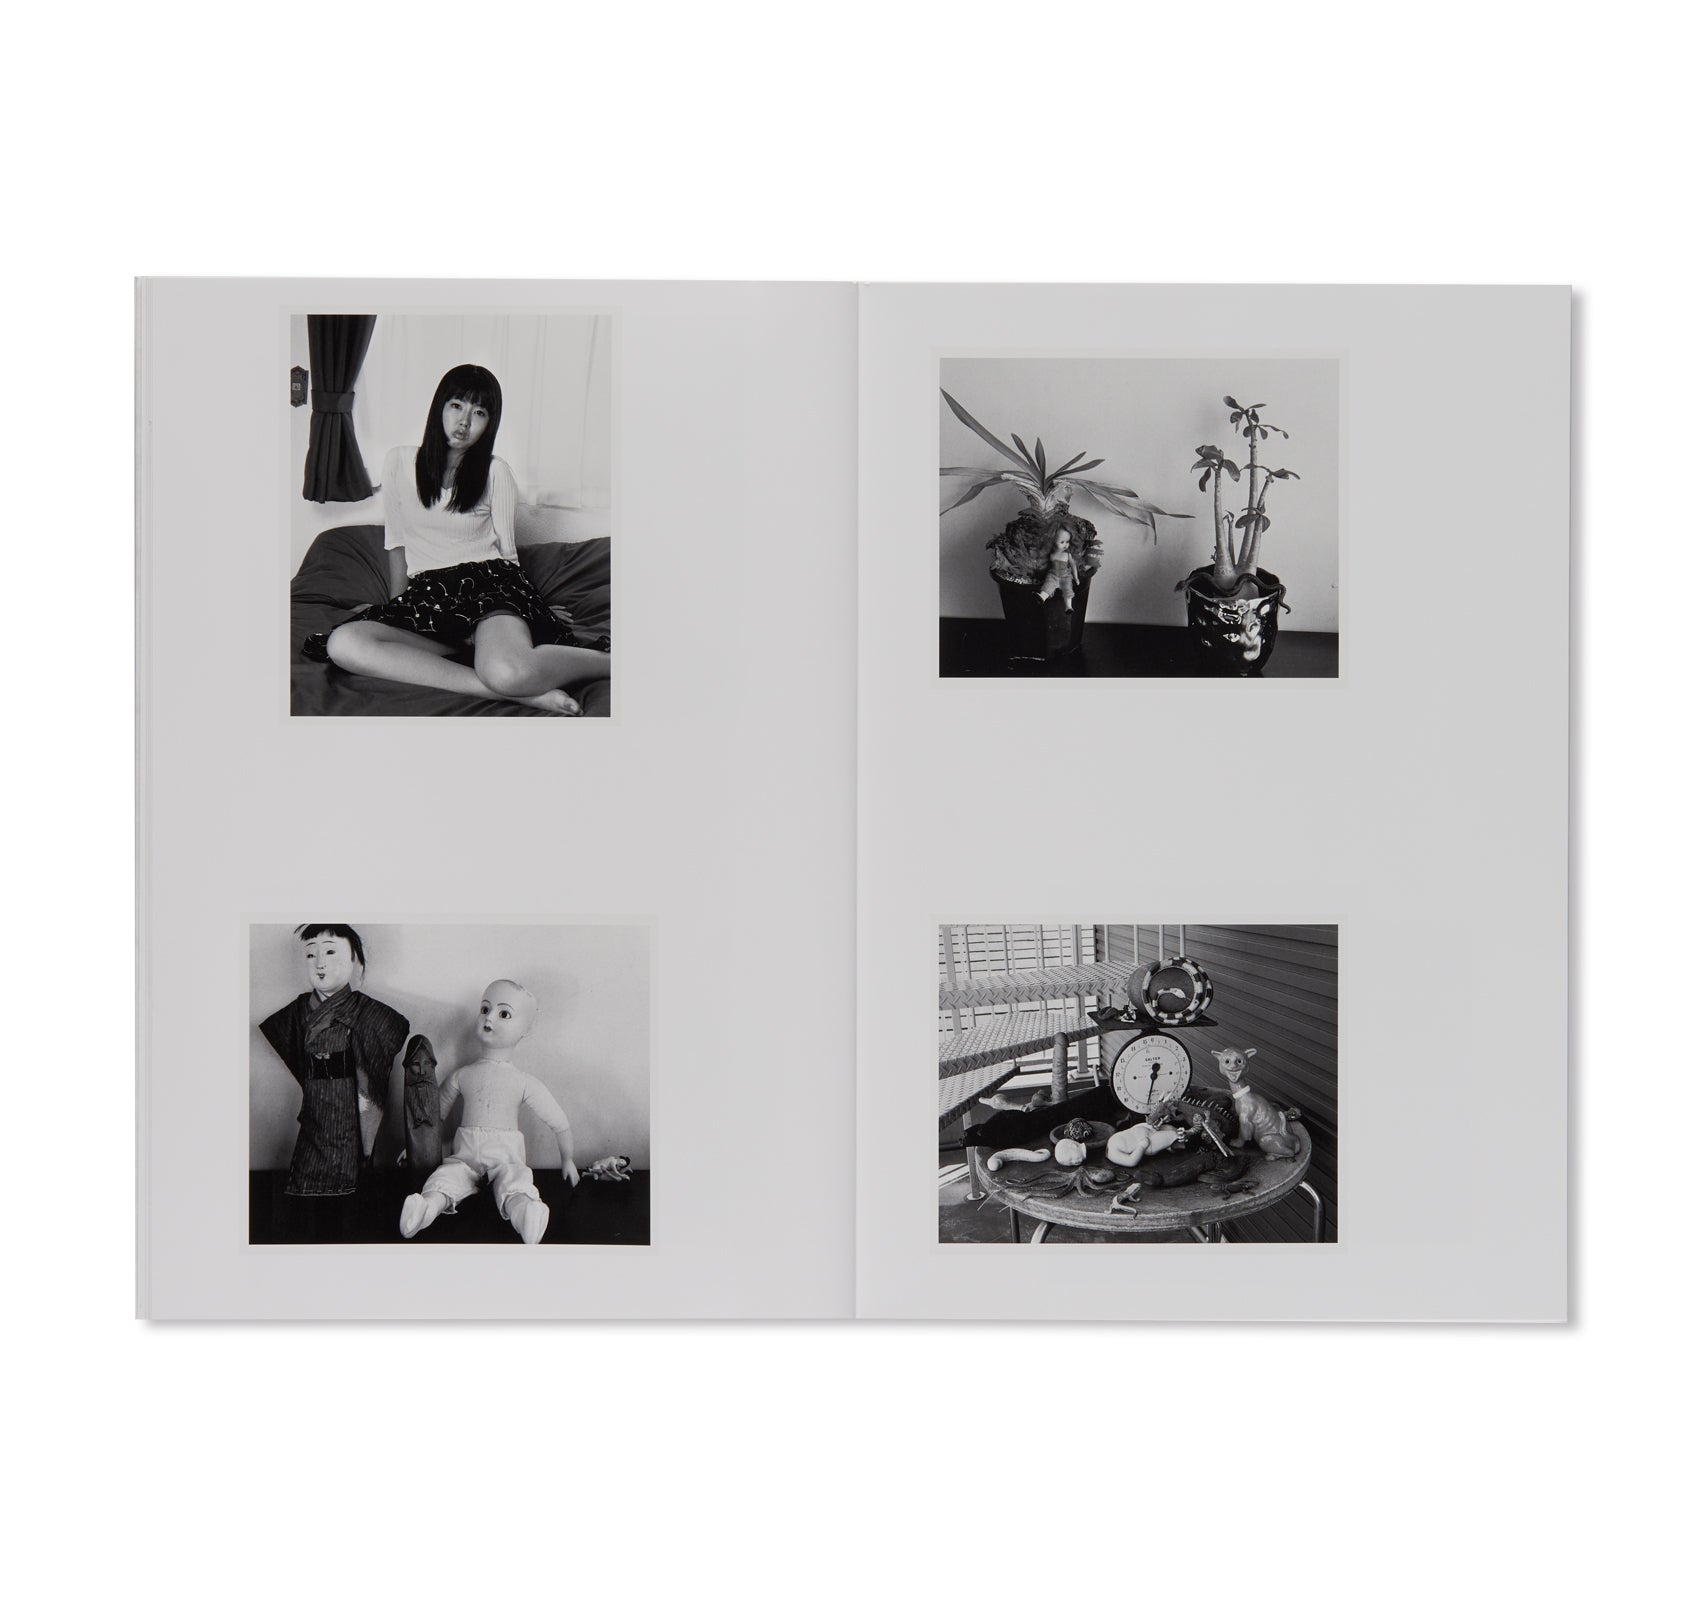 LOVE-DREAM, LOVE-NOTHING by Nobuyoshi Araki